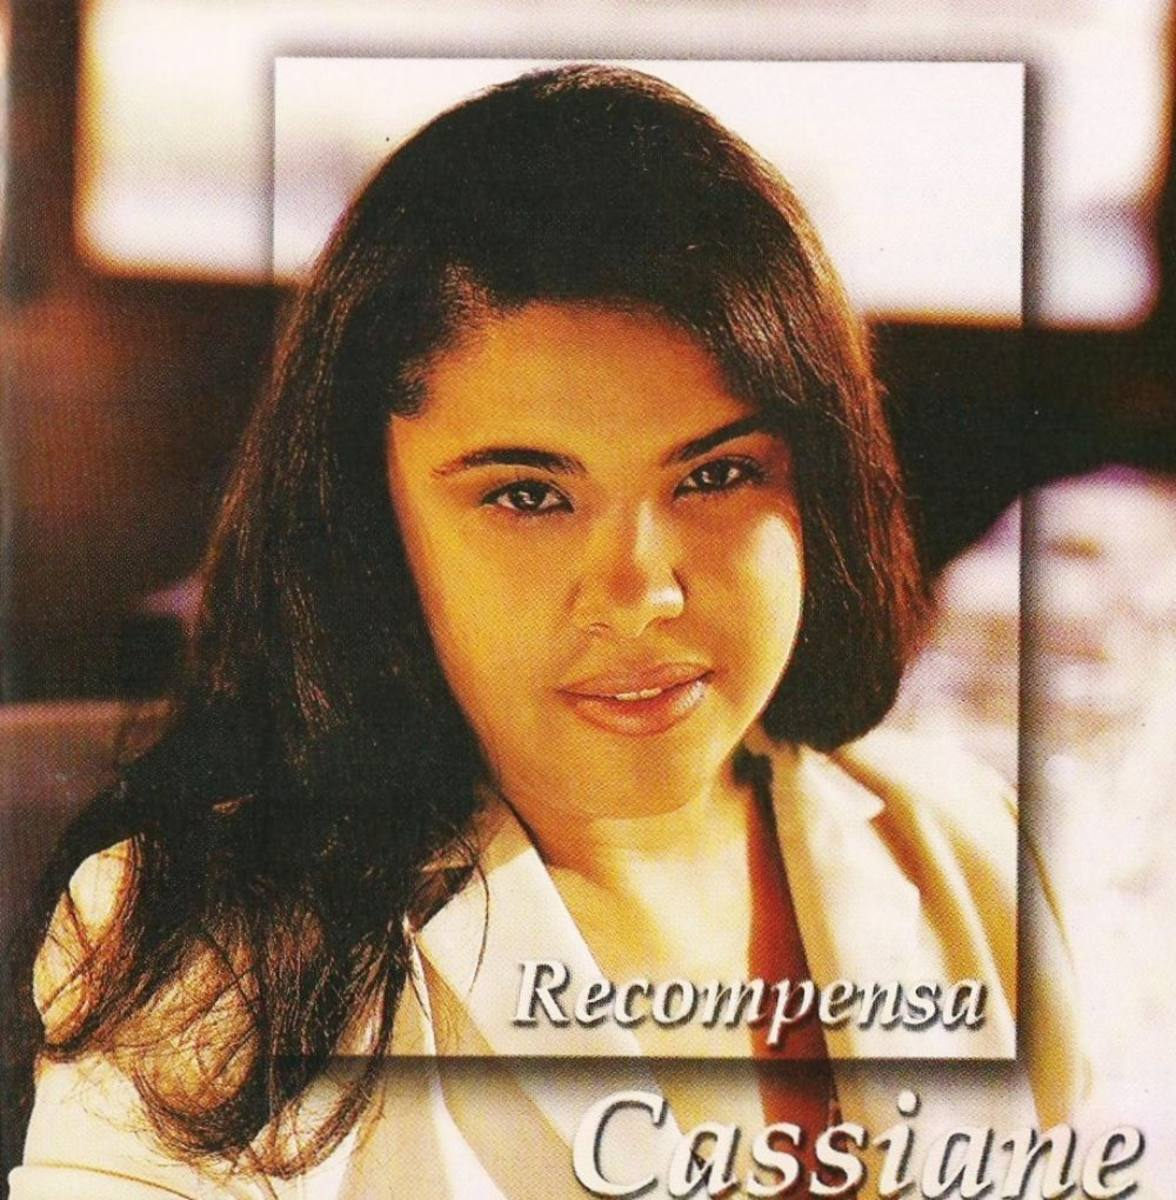 RECOMPENSA BAIXAR CD PLAYBACK COMPLETO CASSIANE